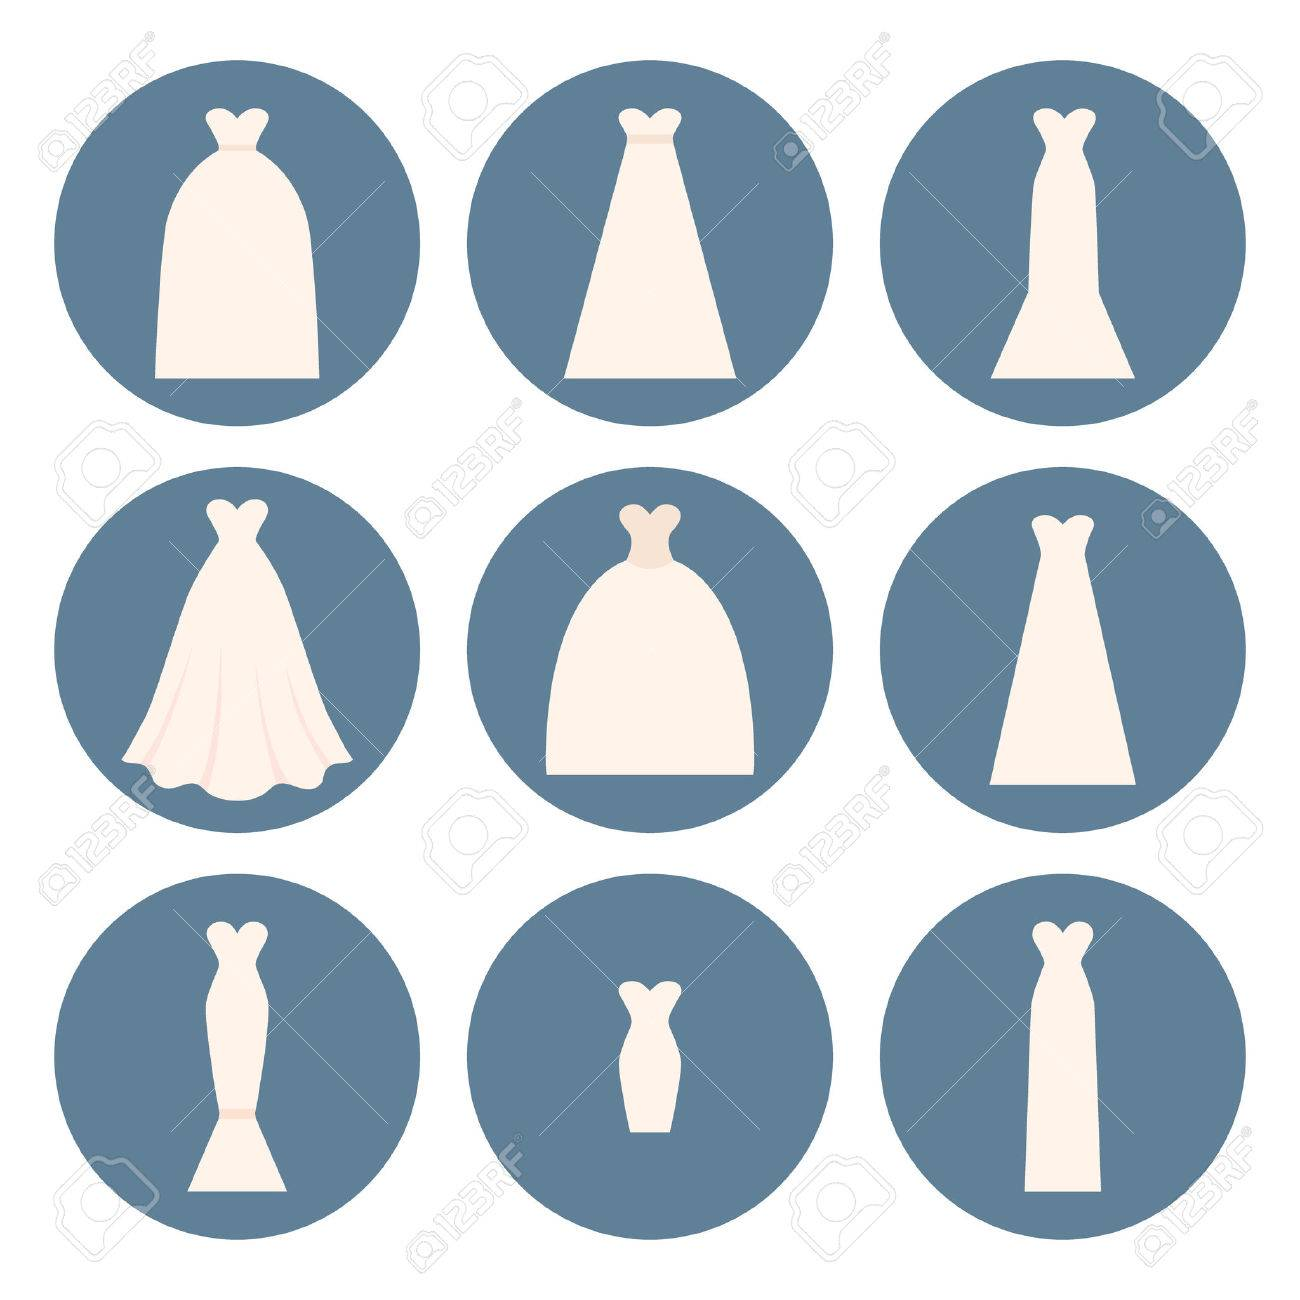 Different Styles Of Wedding Dresses Made In Modern Flat Vector ...